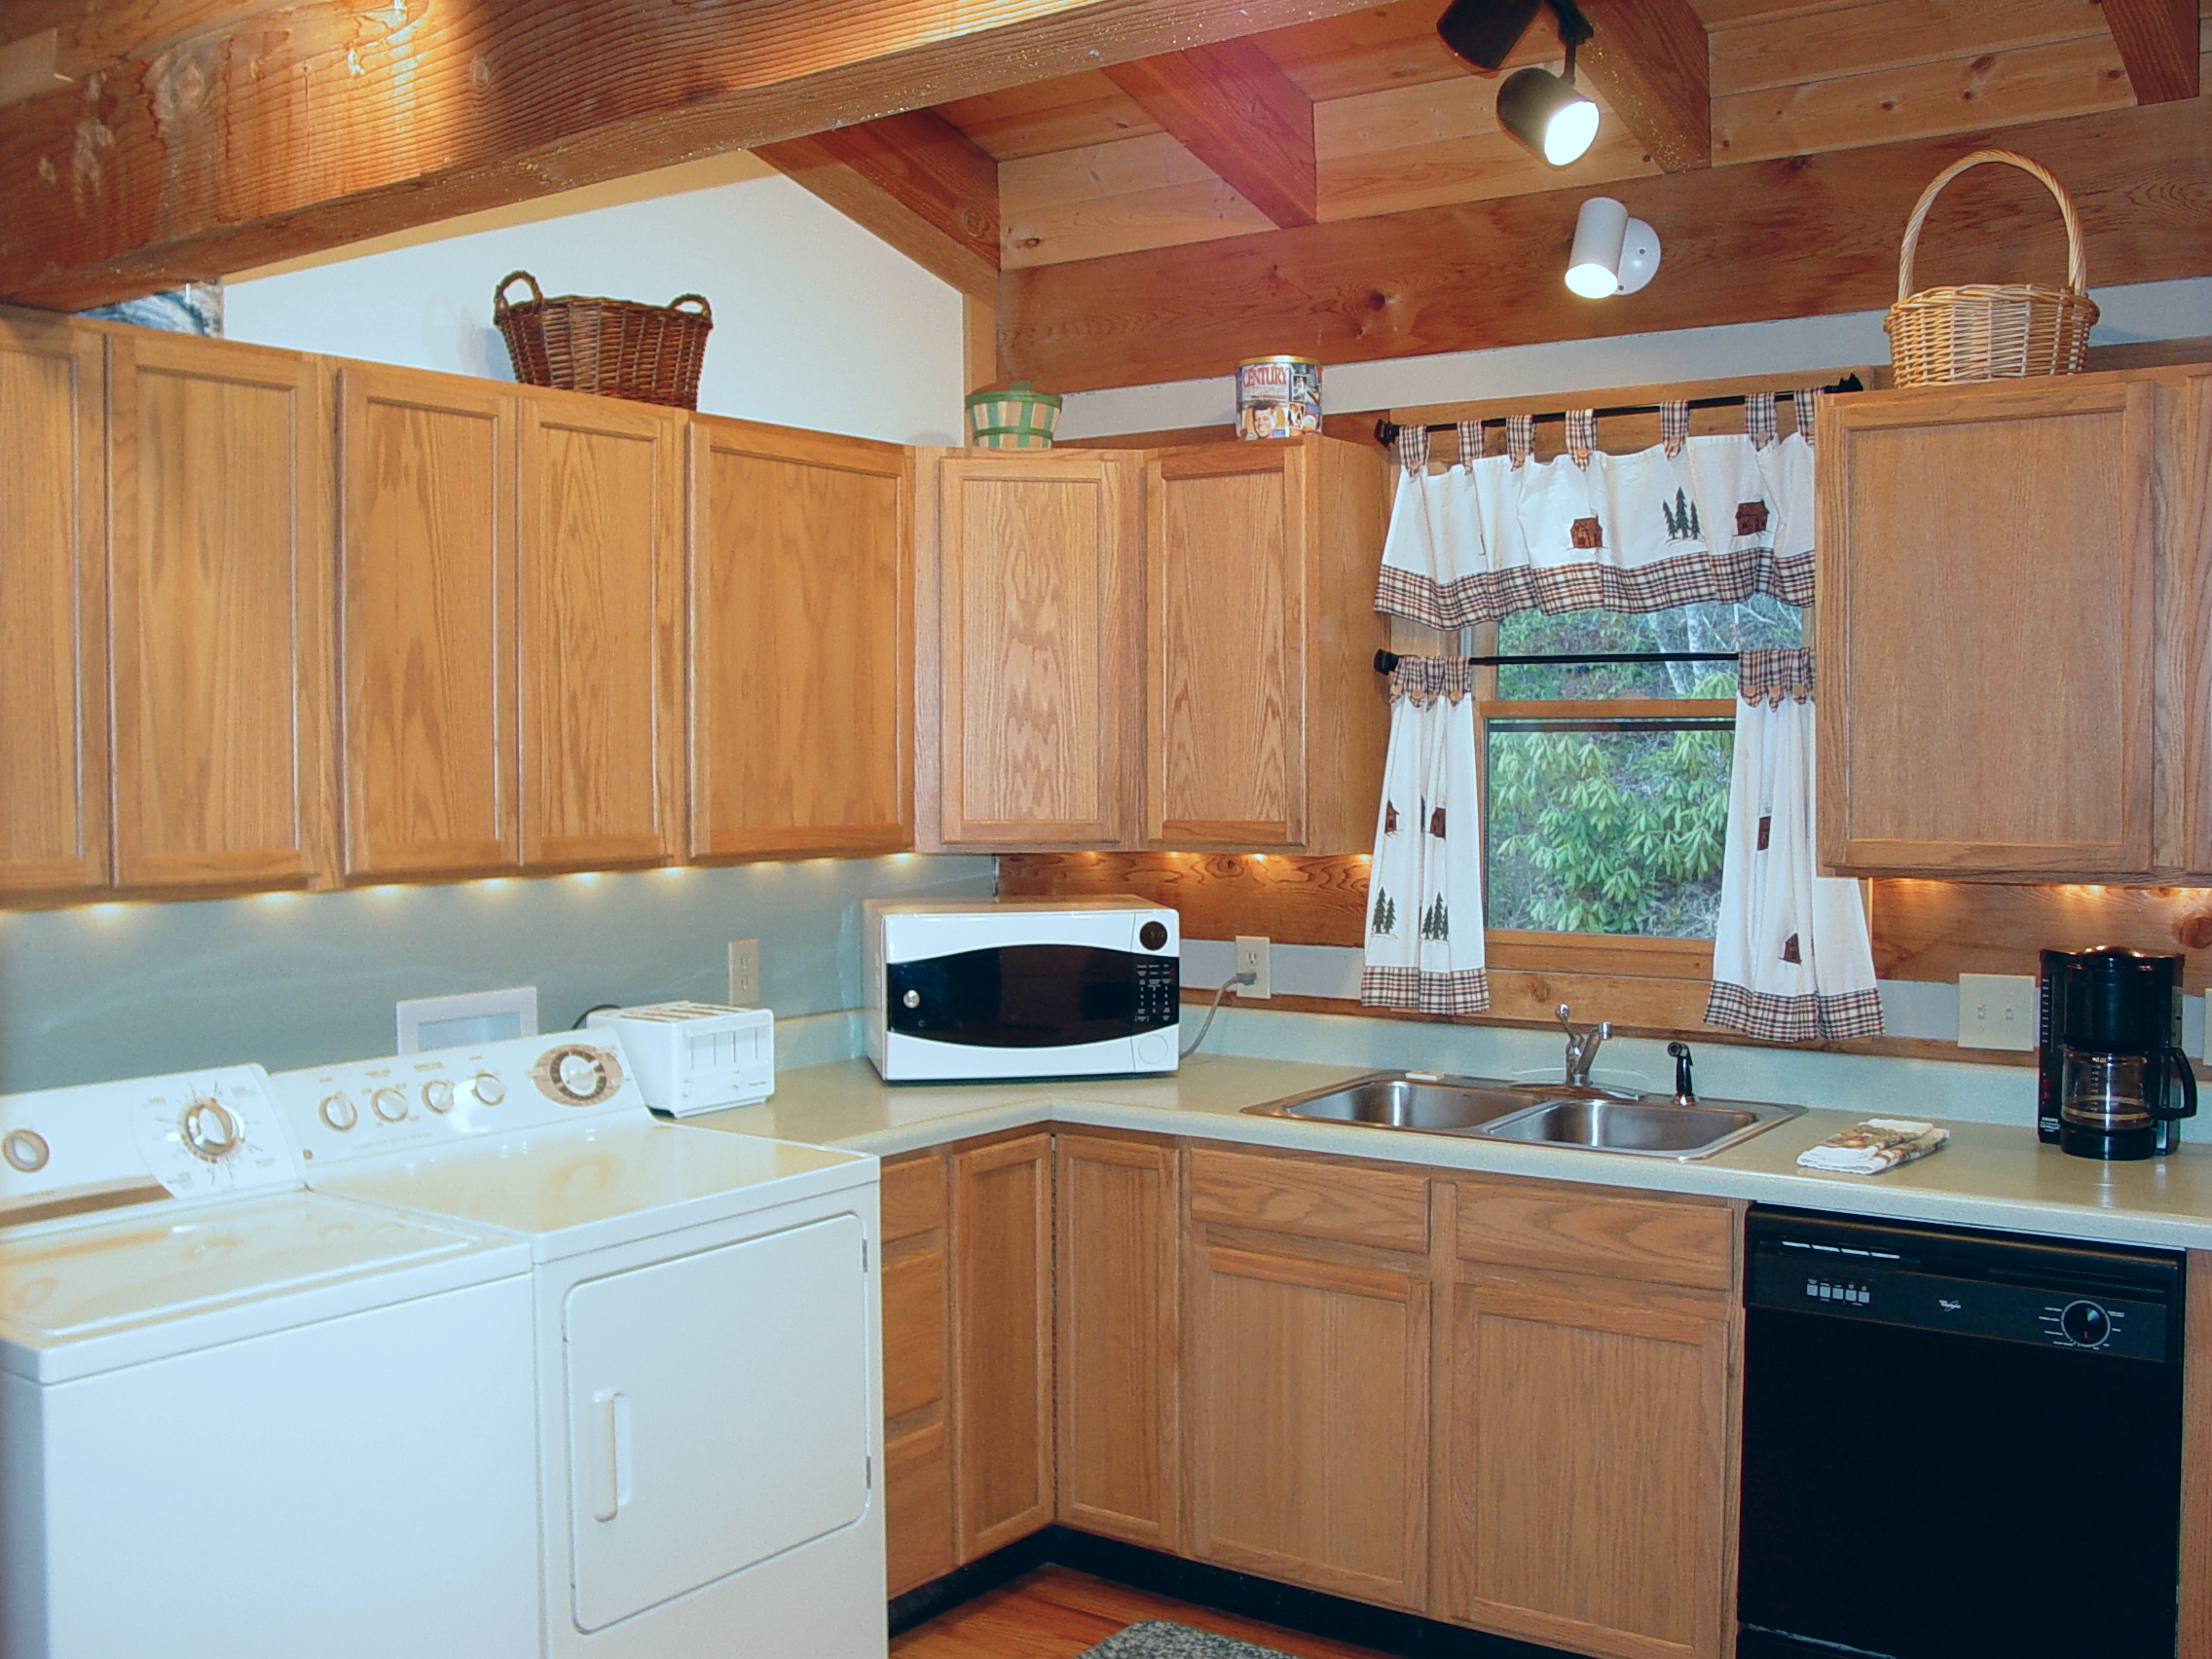 BC_Kitchen_Feb_11_011.jpg